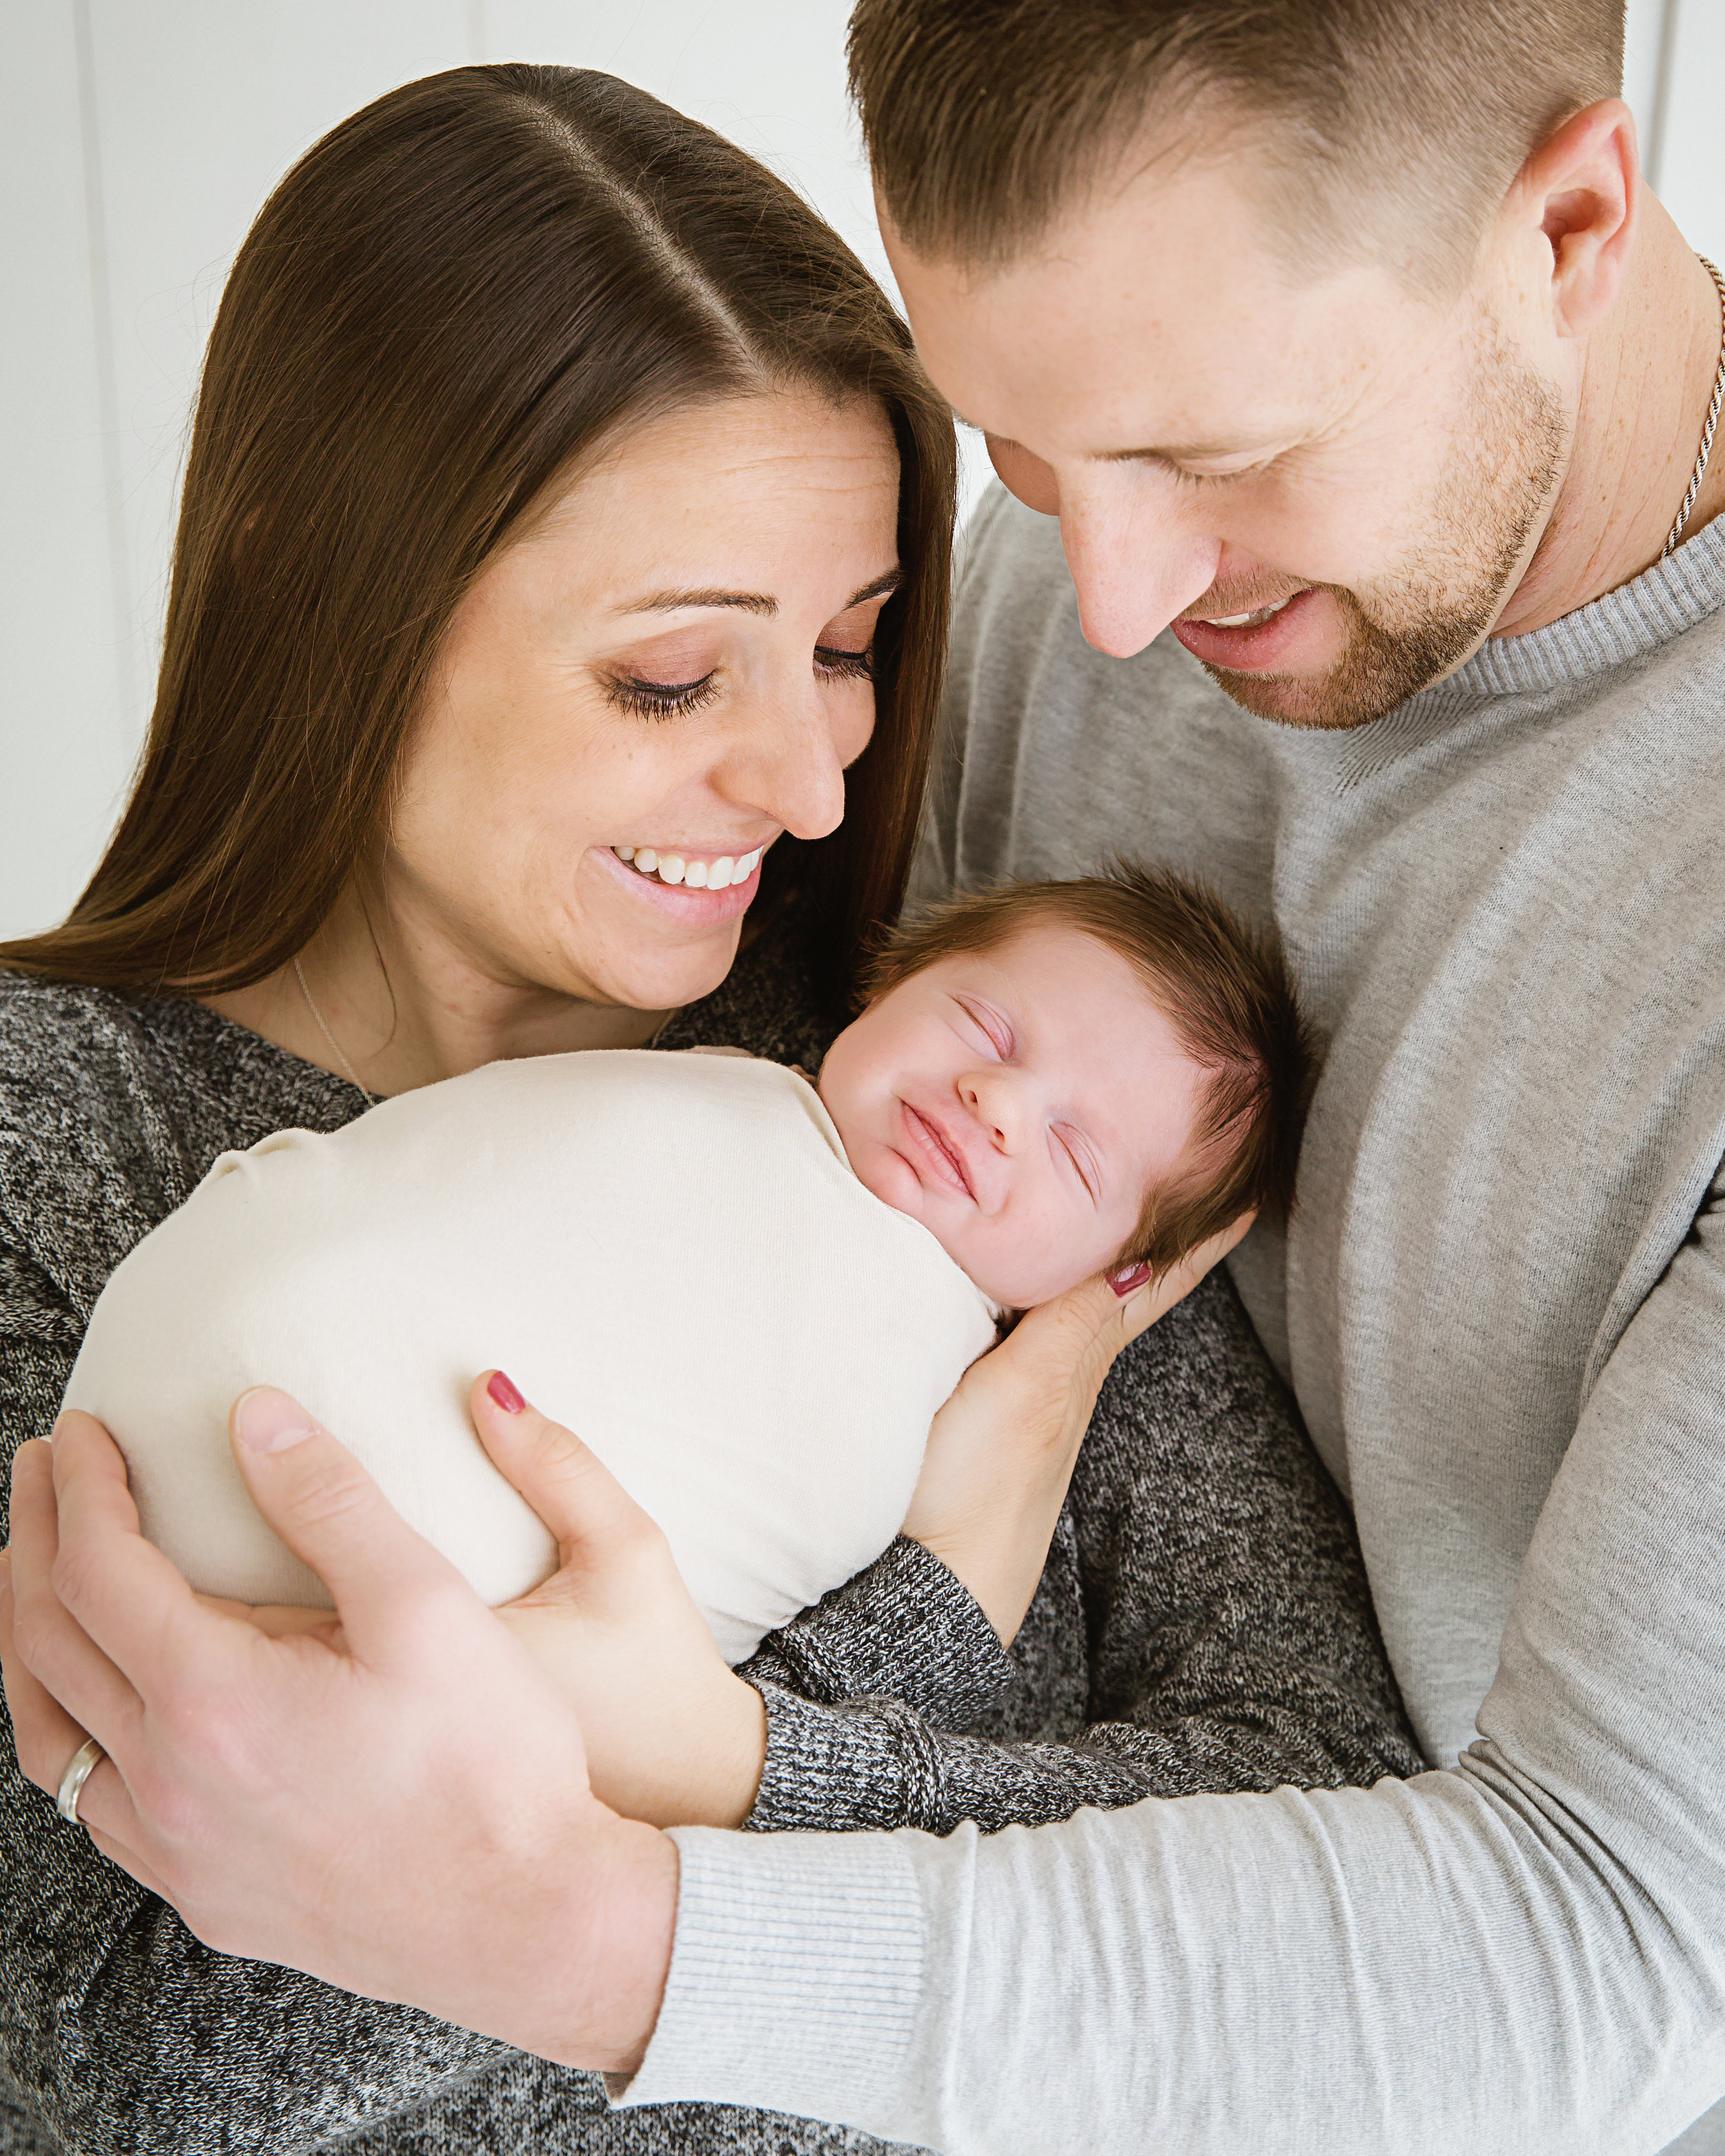 Mom and dad holding their beautiful smiling baby boy in Burlington nj photo studio